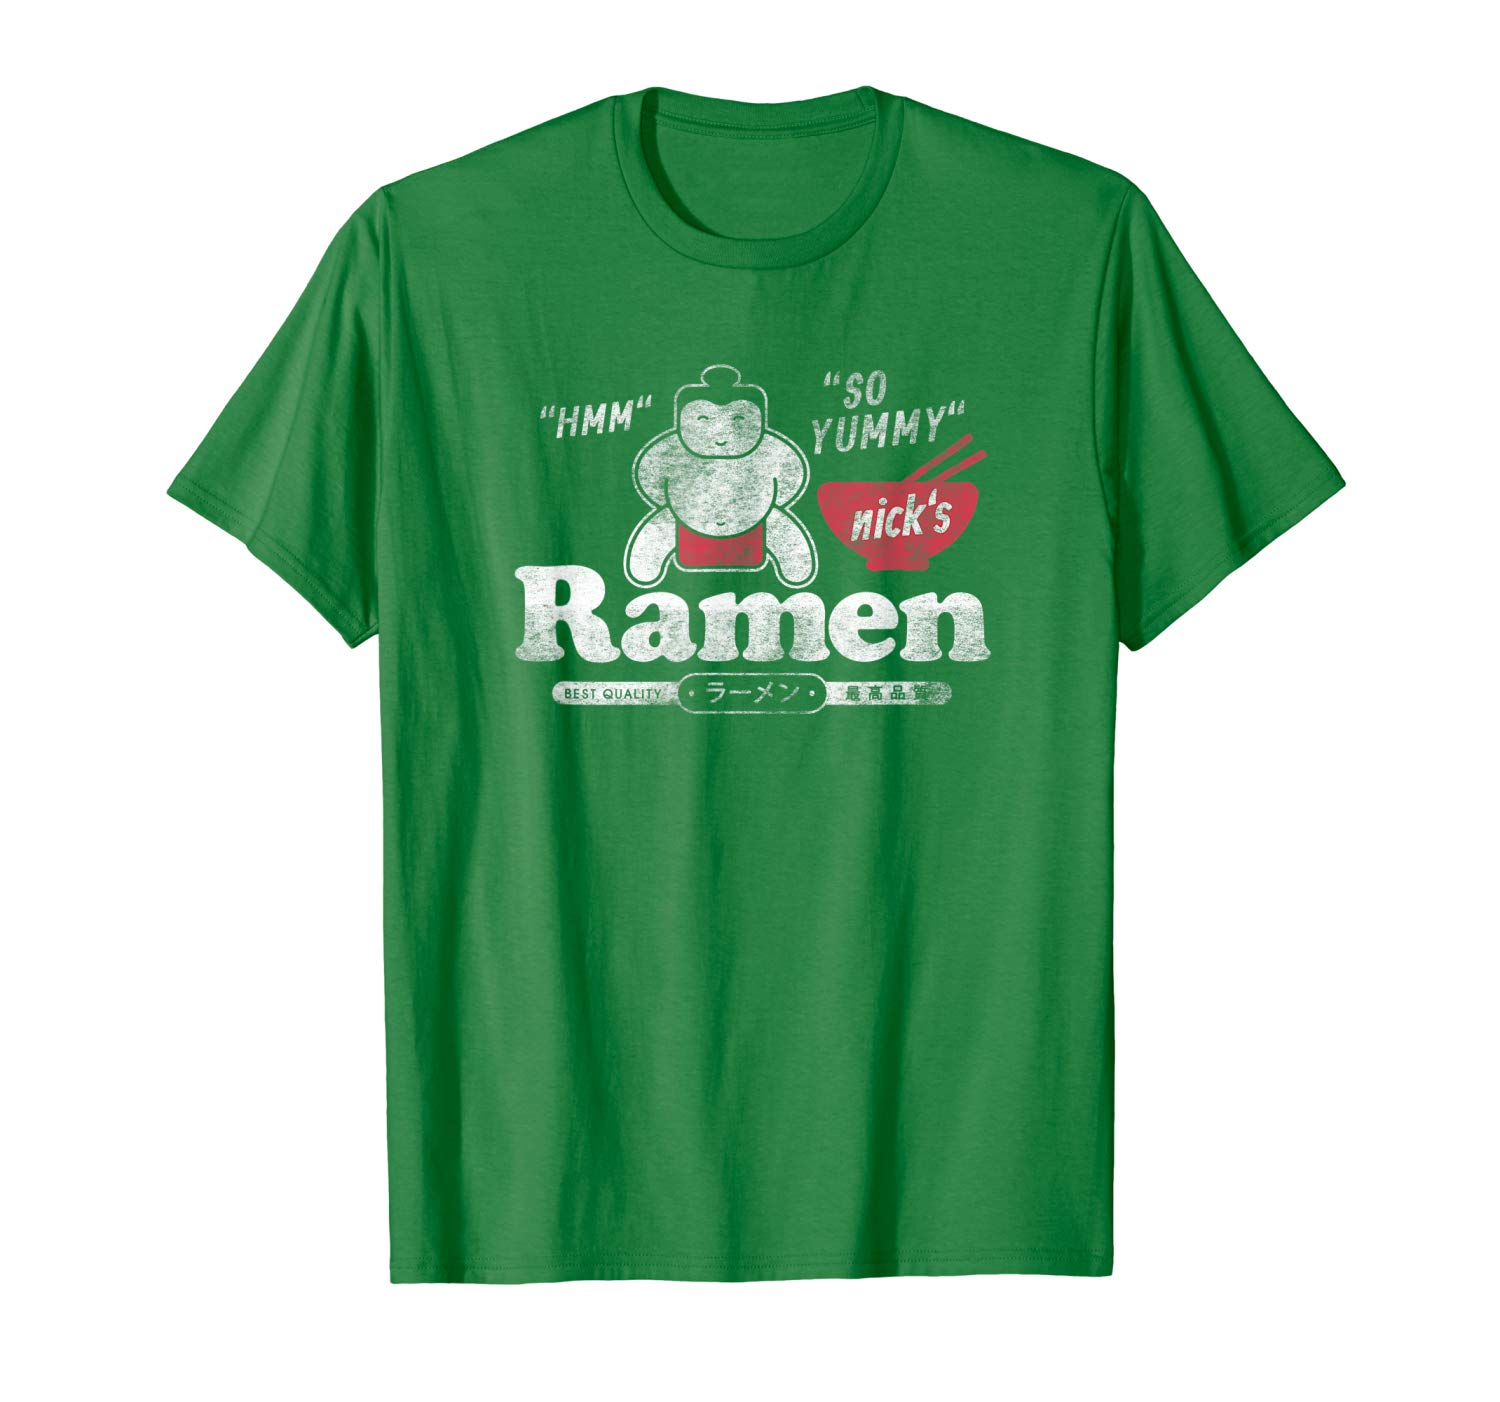 T-Shirt: Nicks Ramen Sumo Japan Nudel Retro Design T-Shirt